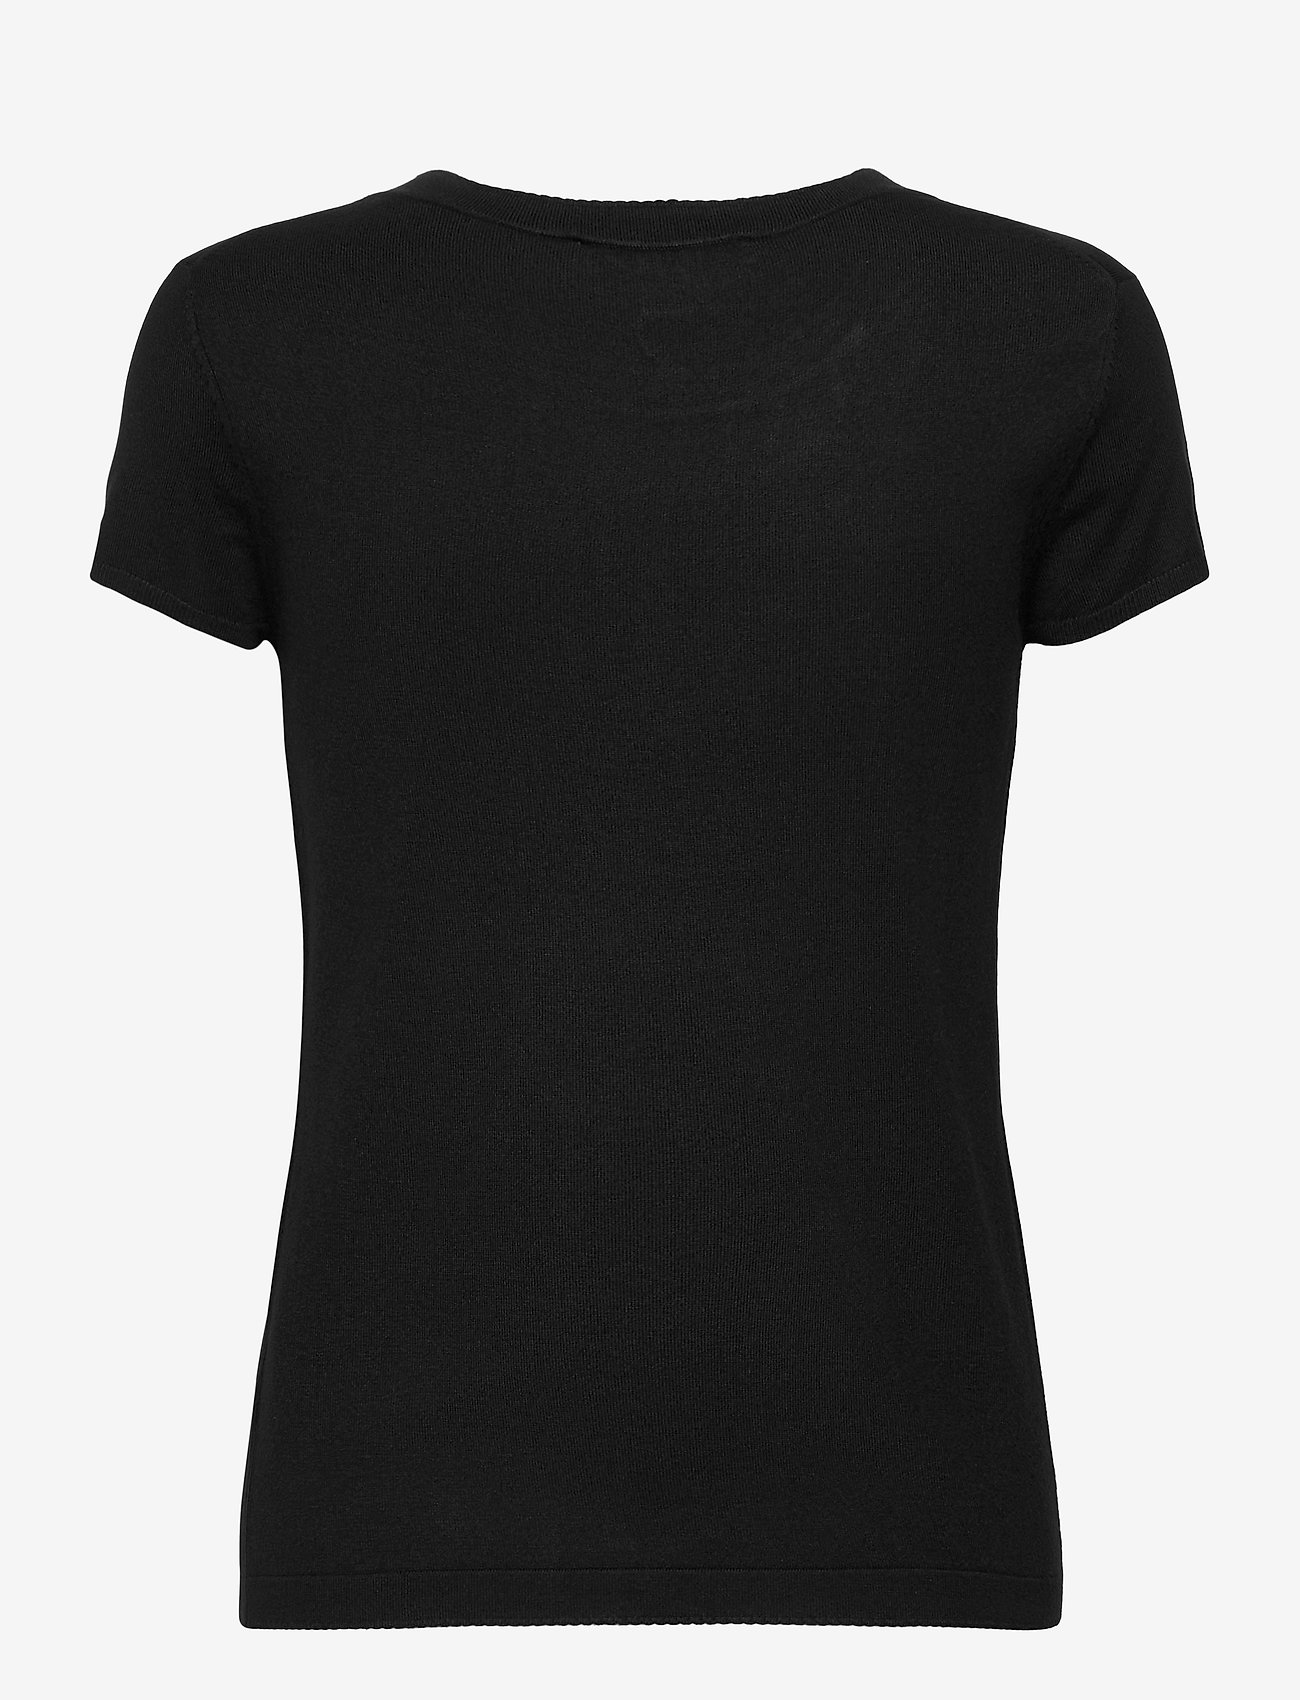 Esprit Collection - Sweaters - t-shirts - black - 1